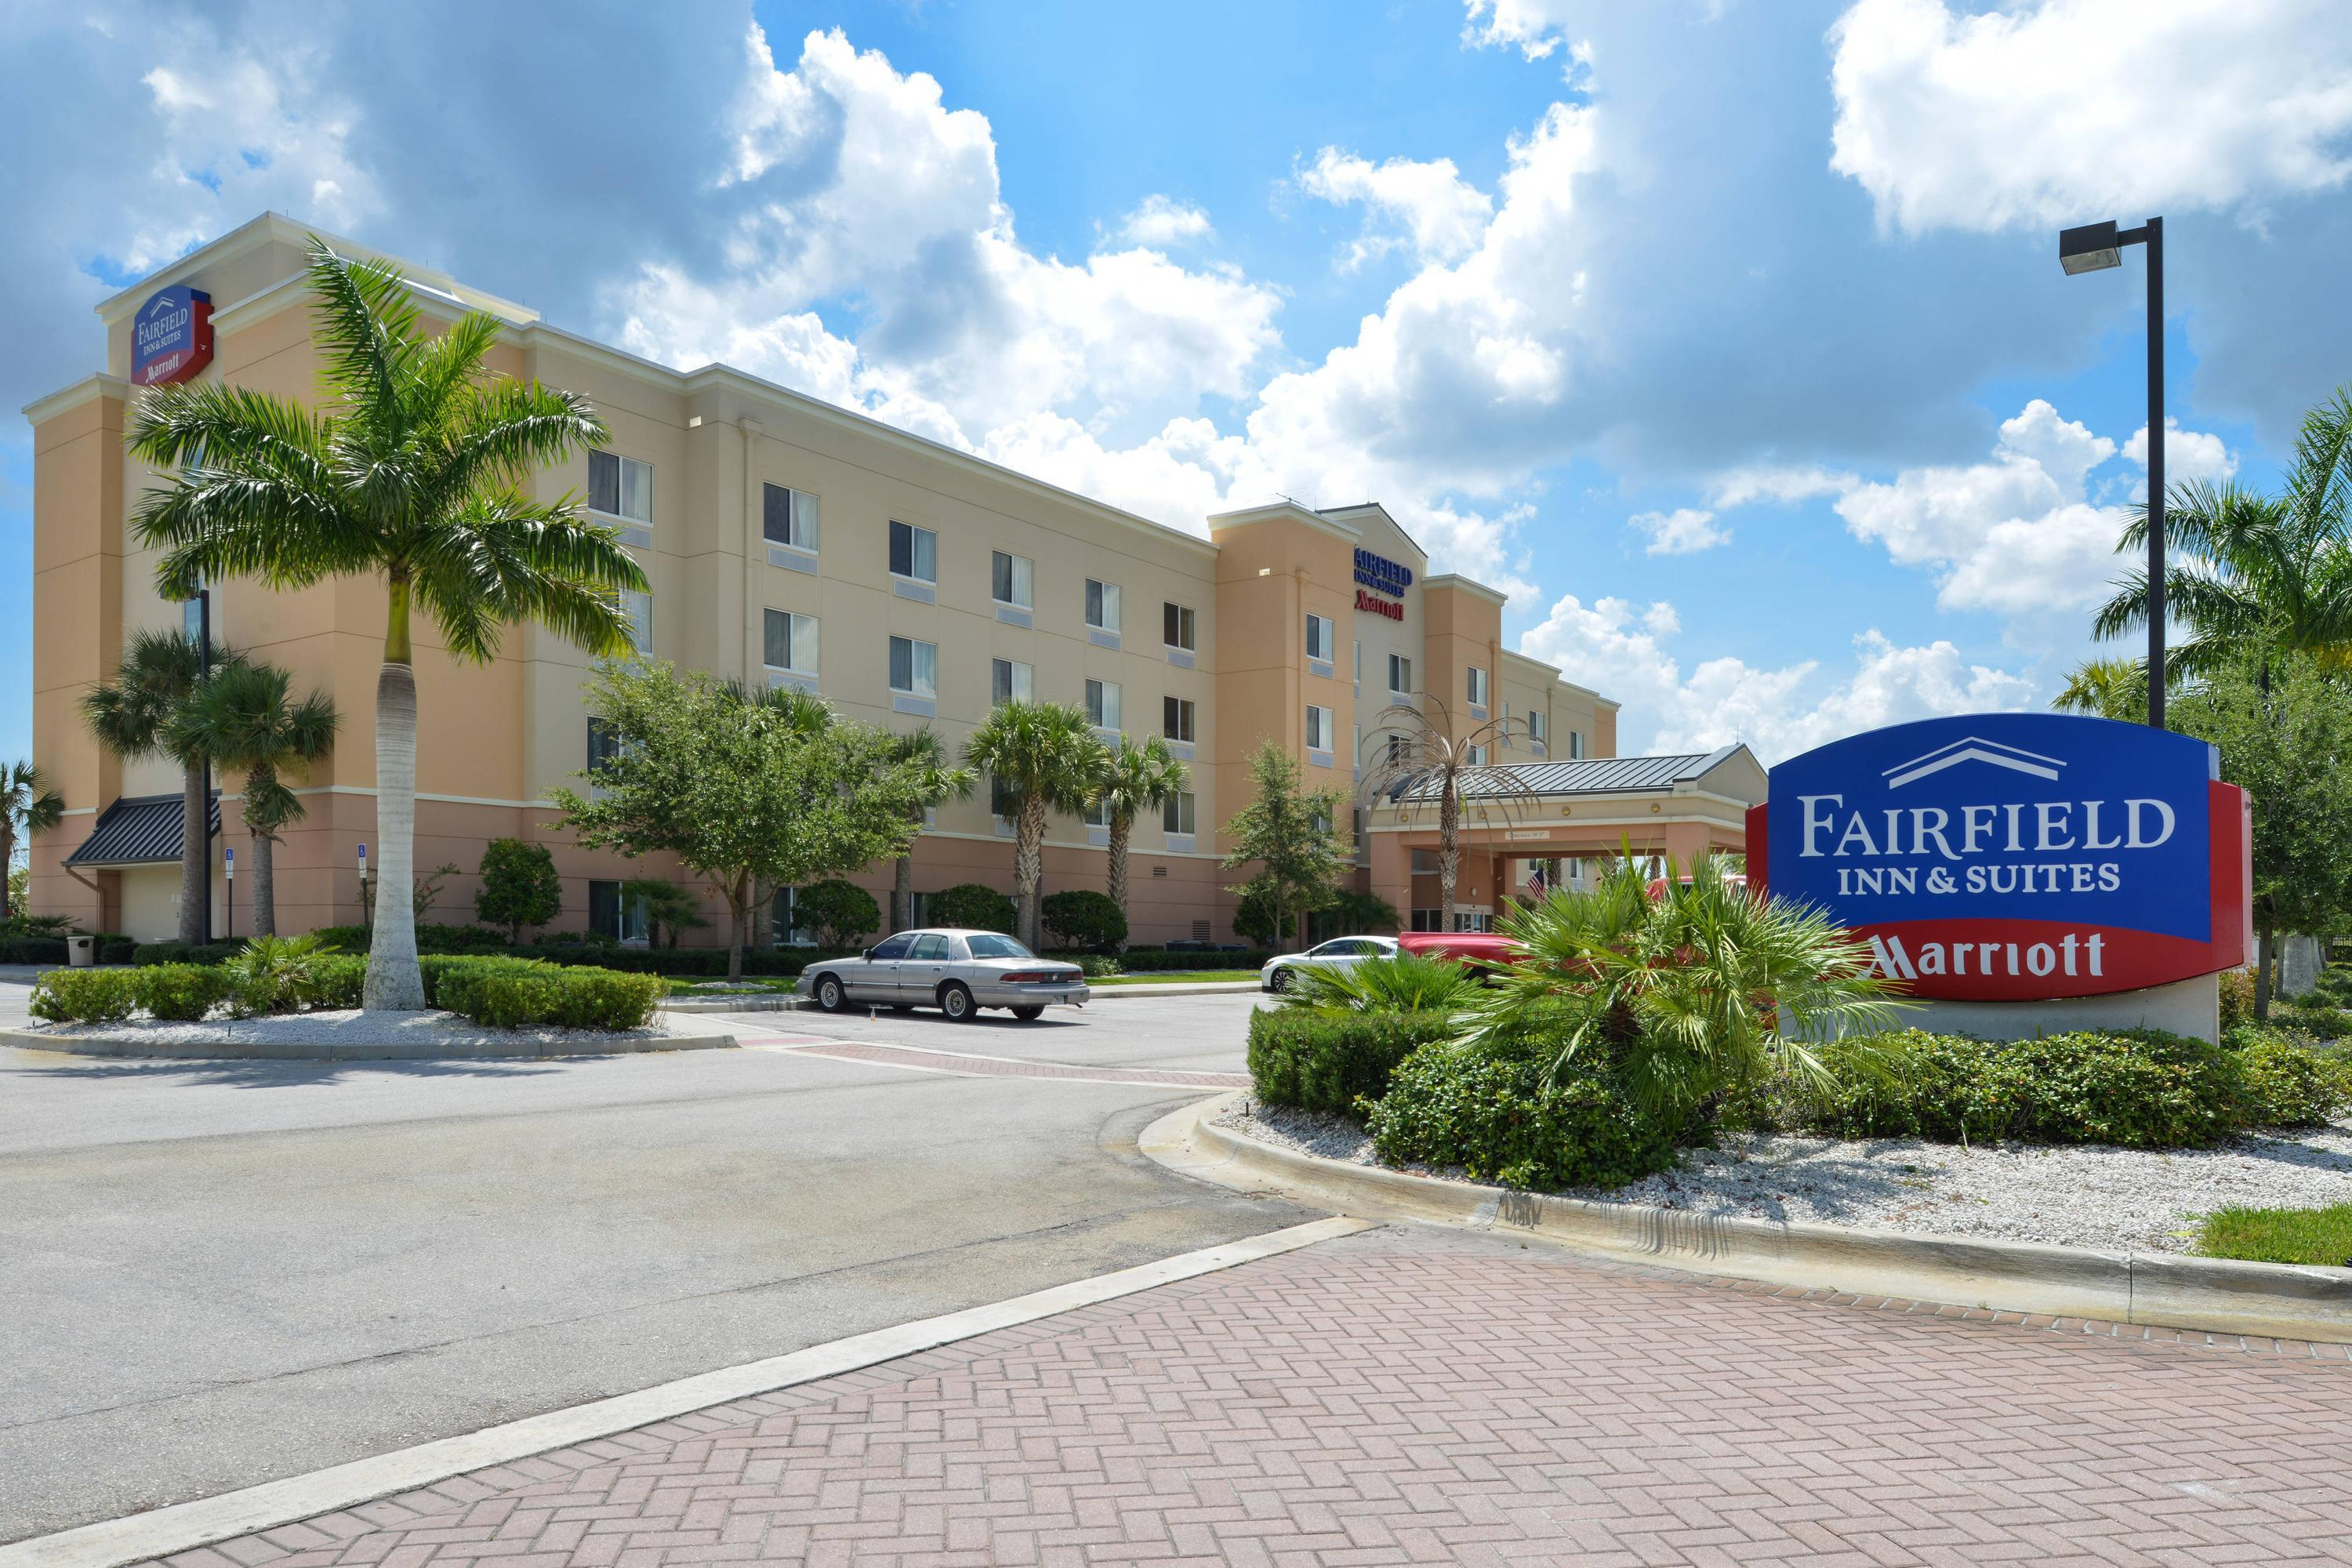 Fairfield Inn and Suites by Marriott Fort Pierce